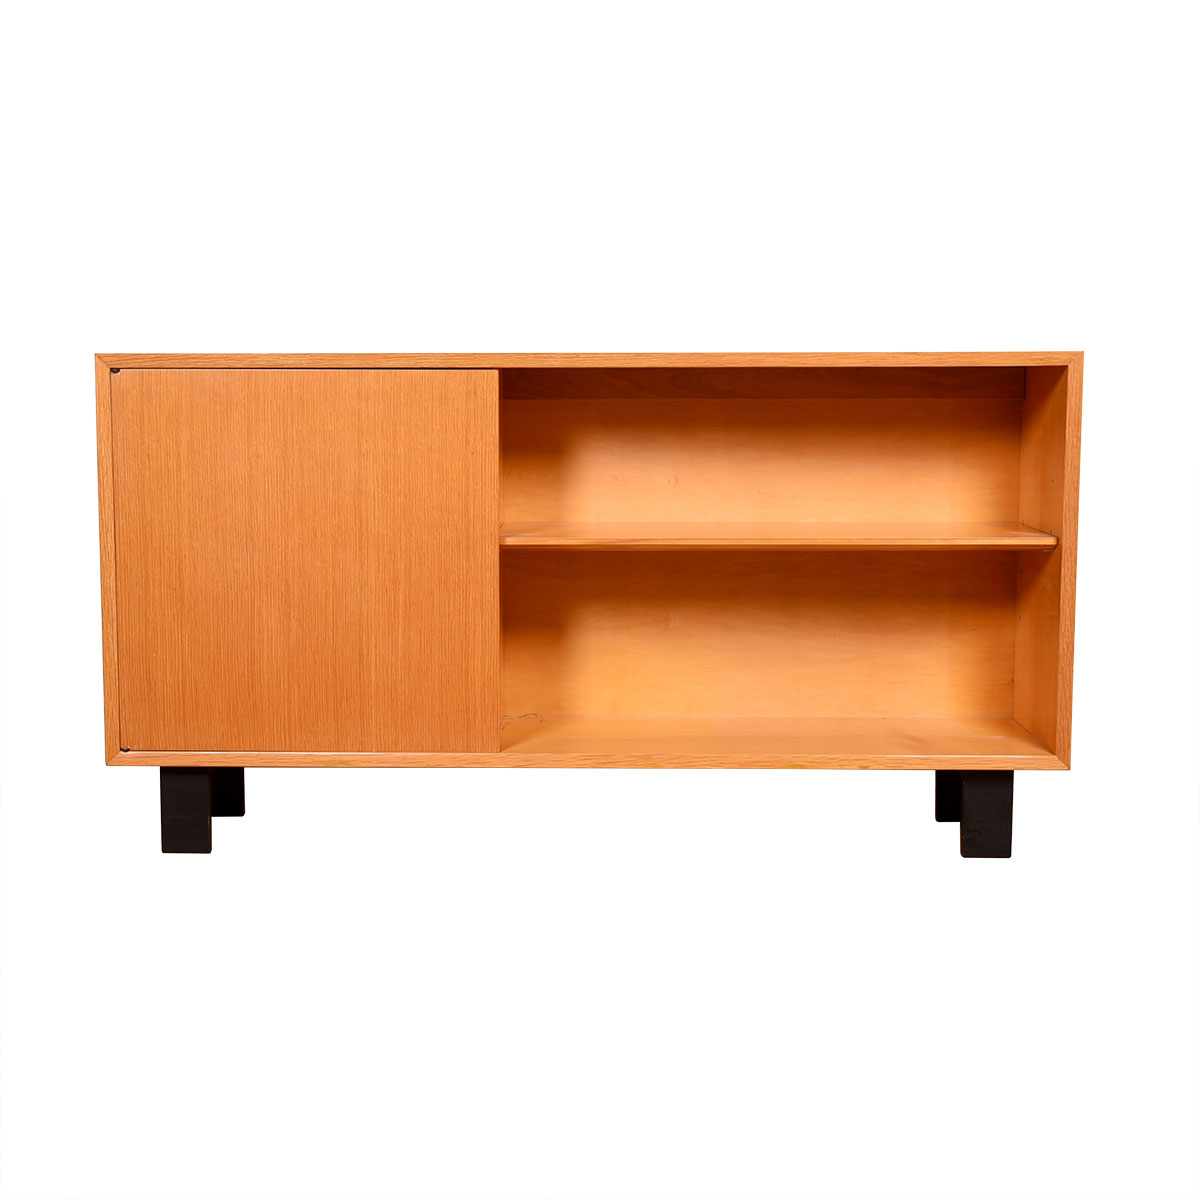 Slim MCM Low Bookcase w  Cabinet Door by George Nelson for Herman Miller 1950's